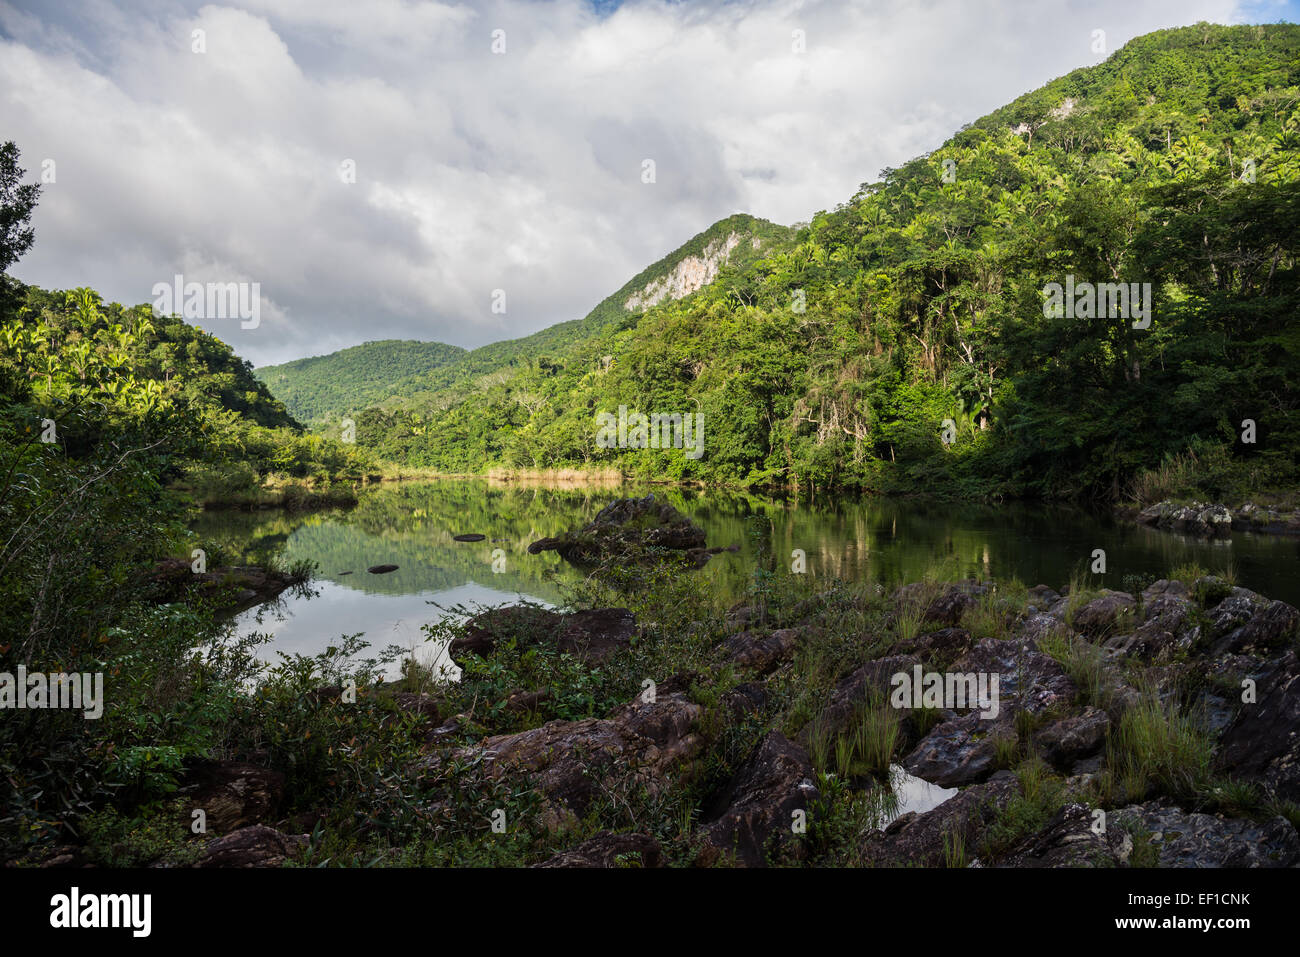 The Macal River running through lush jungles of Belize, Central America. - Stock Image